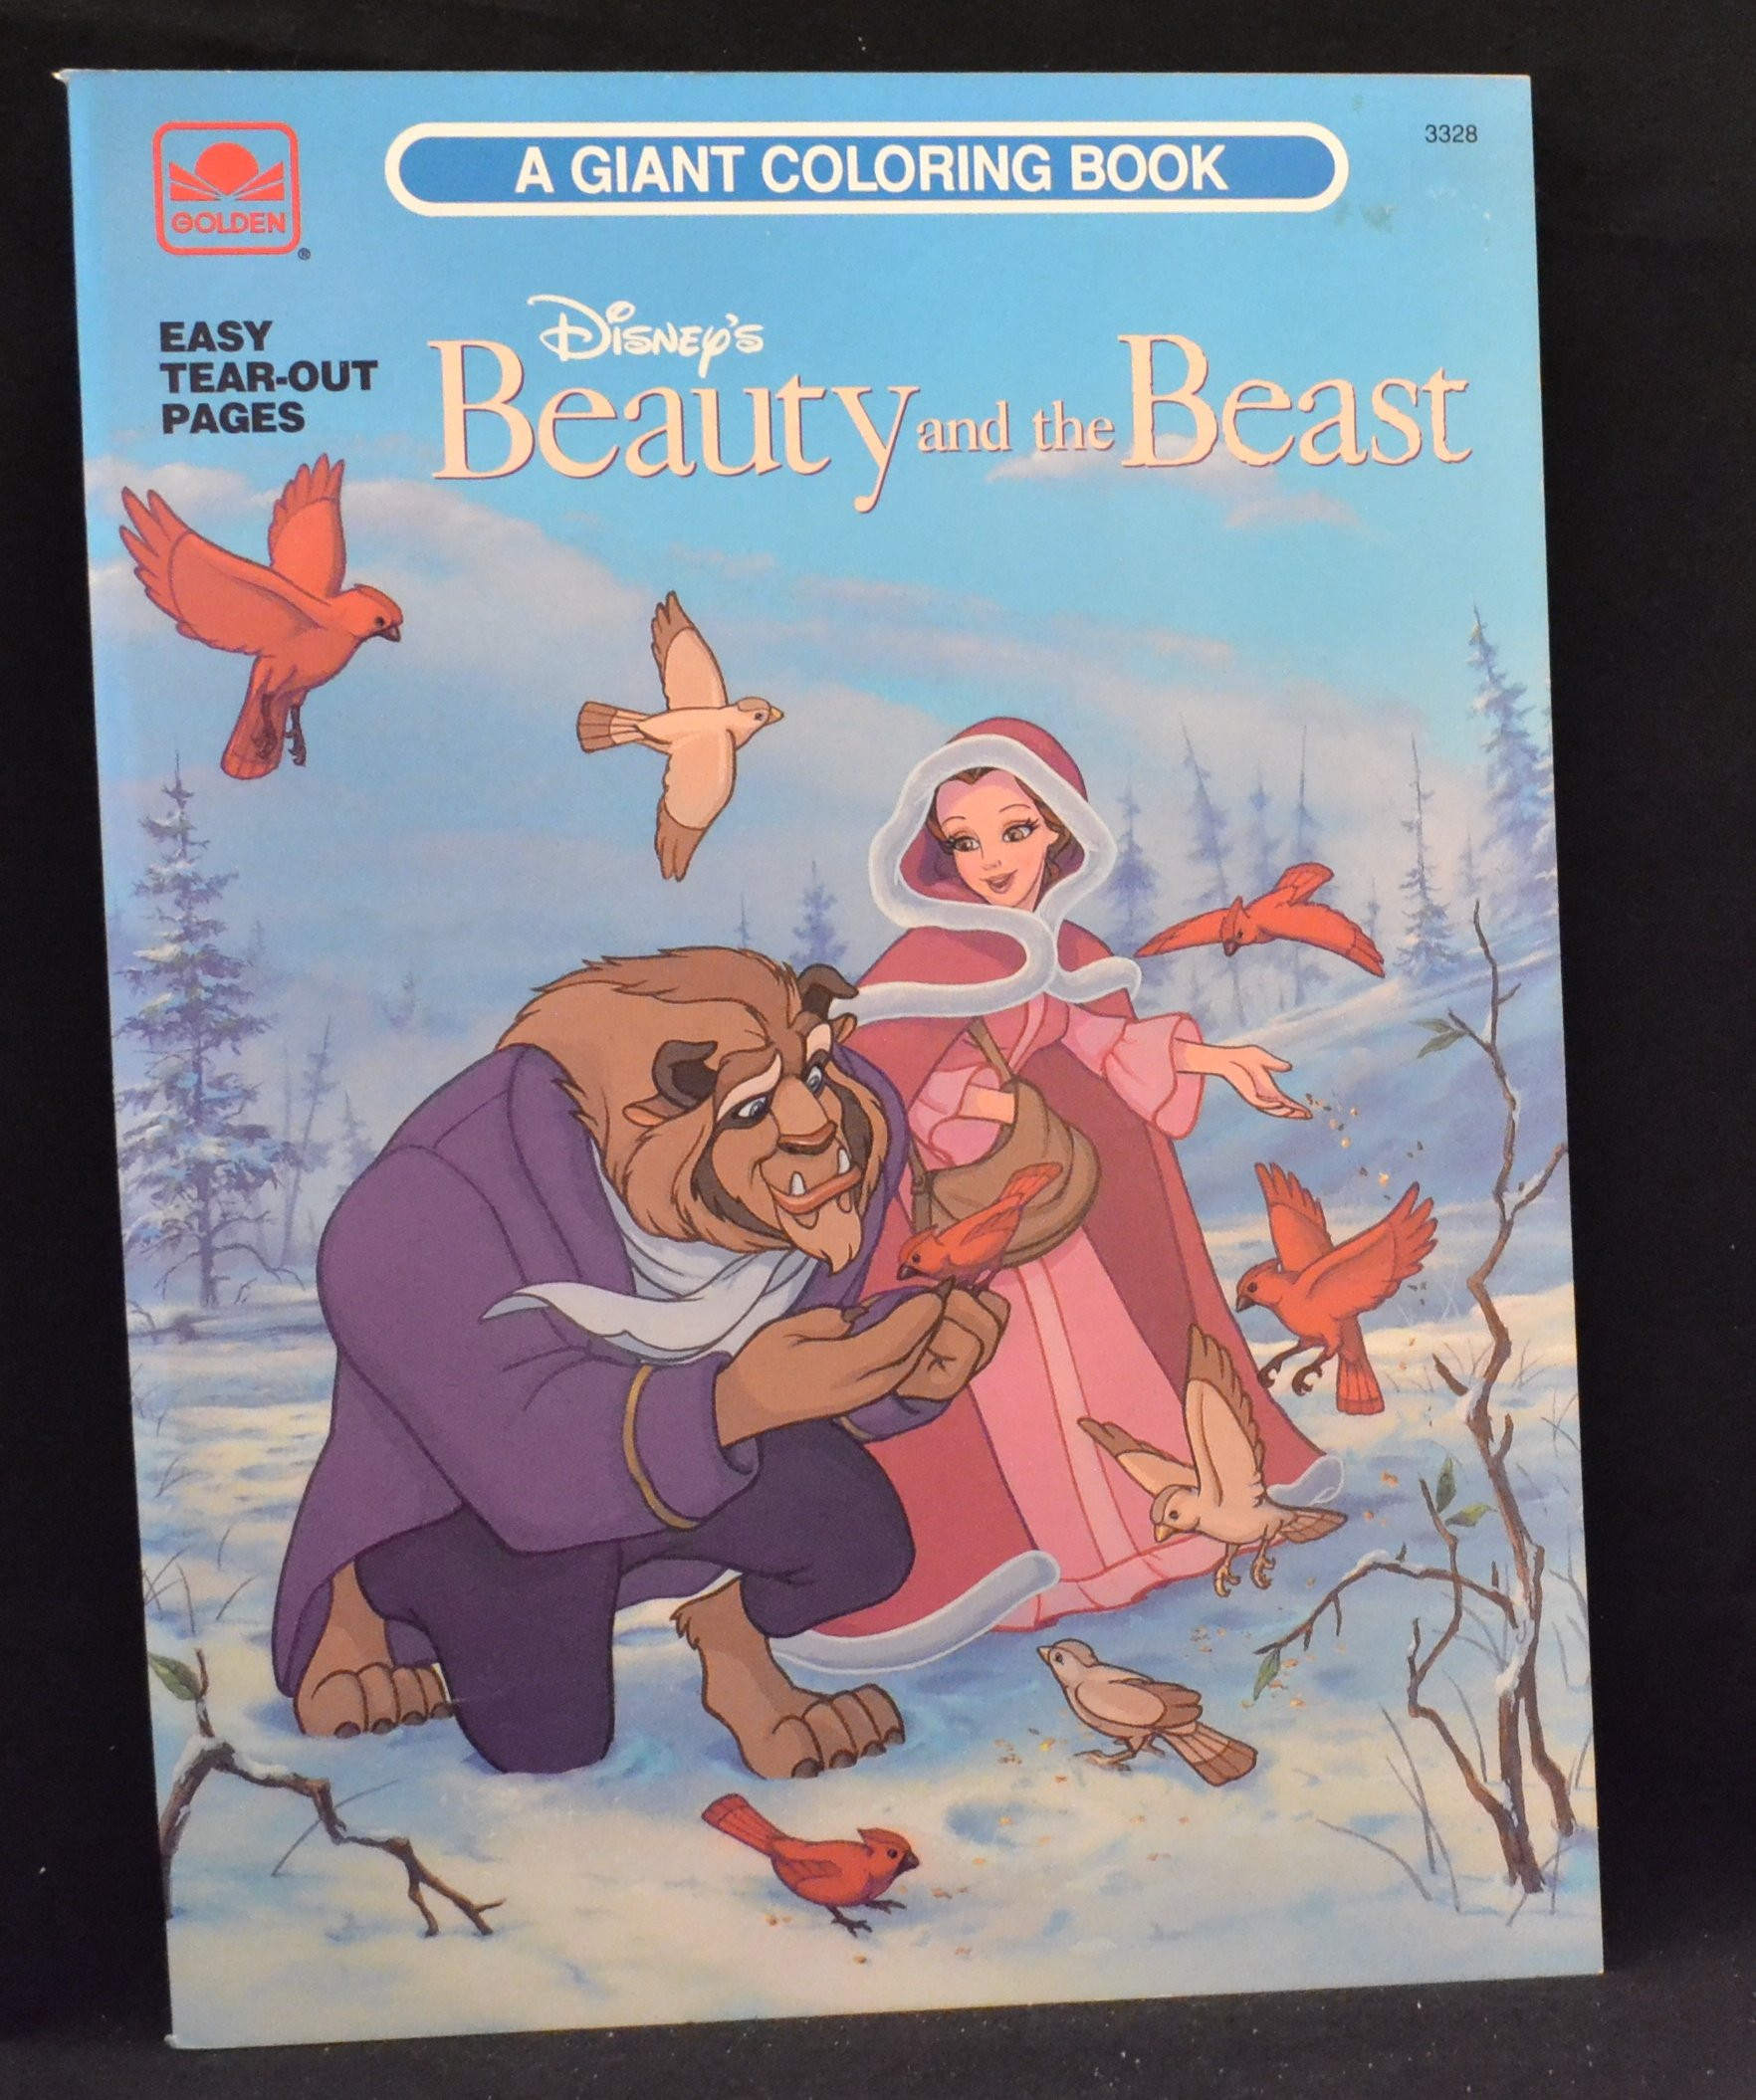 Disney S Beauty And The Beast A Giant Coloring Book 9780307033284